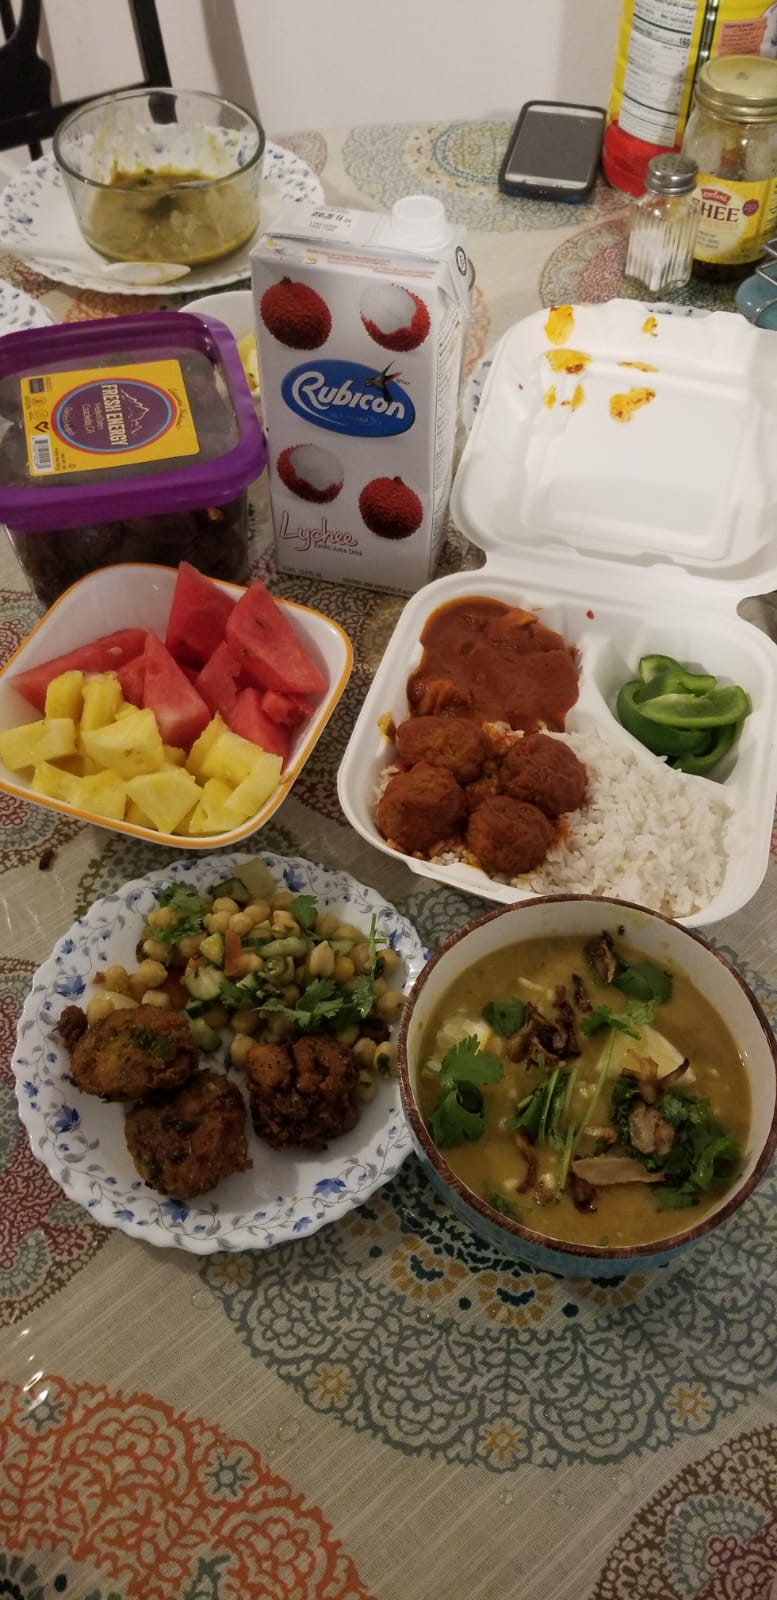 Lamisa Fairooz and her family have traditional Bengali foods for iftar in Rochester, New York.